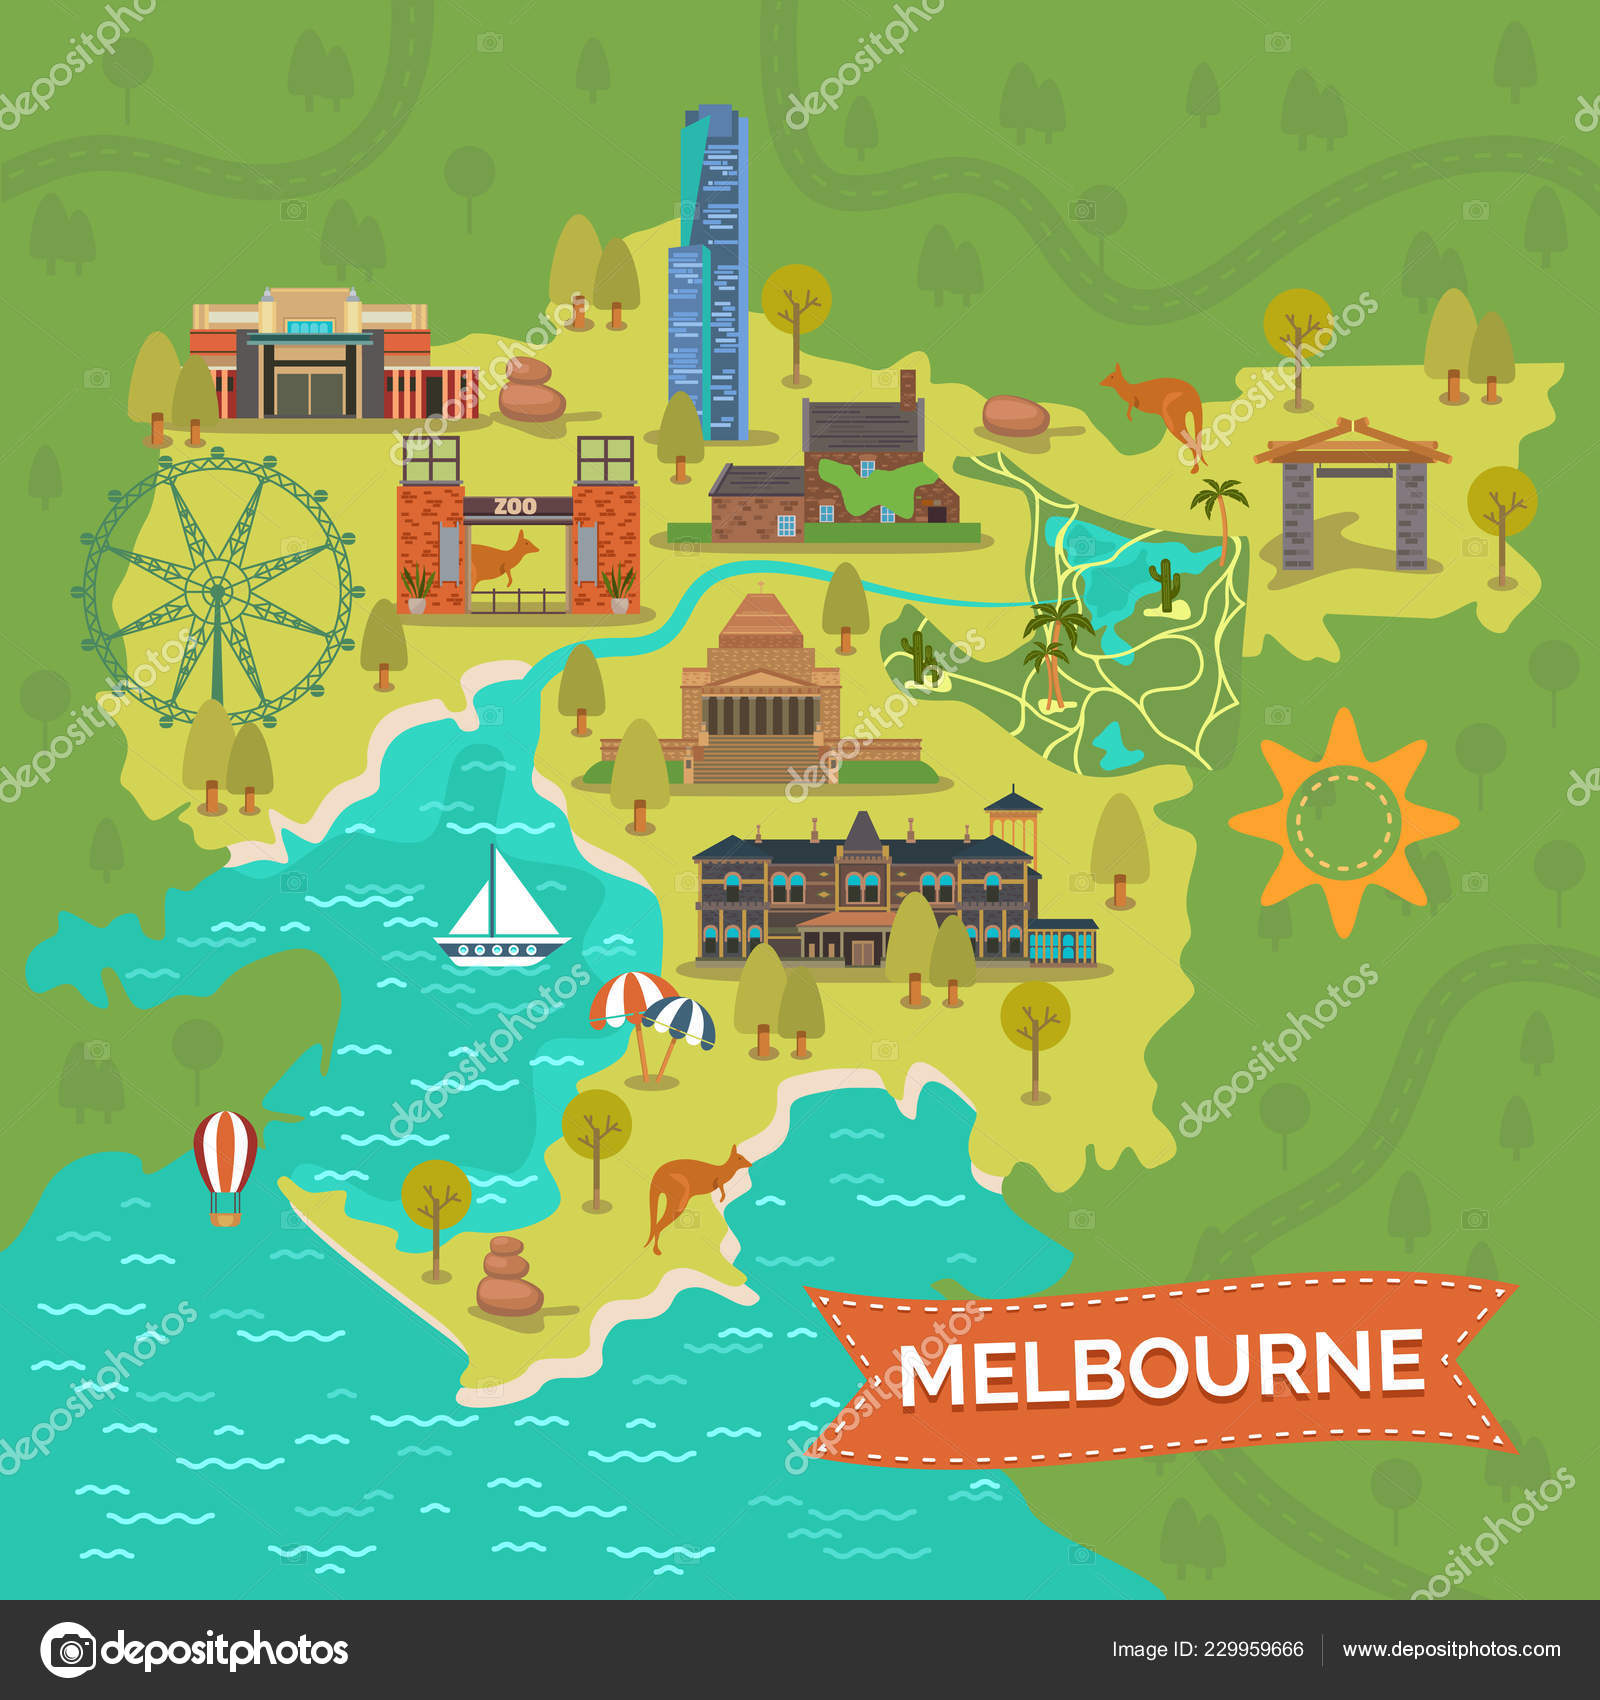 Melbourne Australia Map With Landmarks Sightseeing Stock Vector